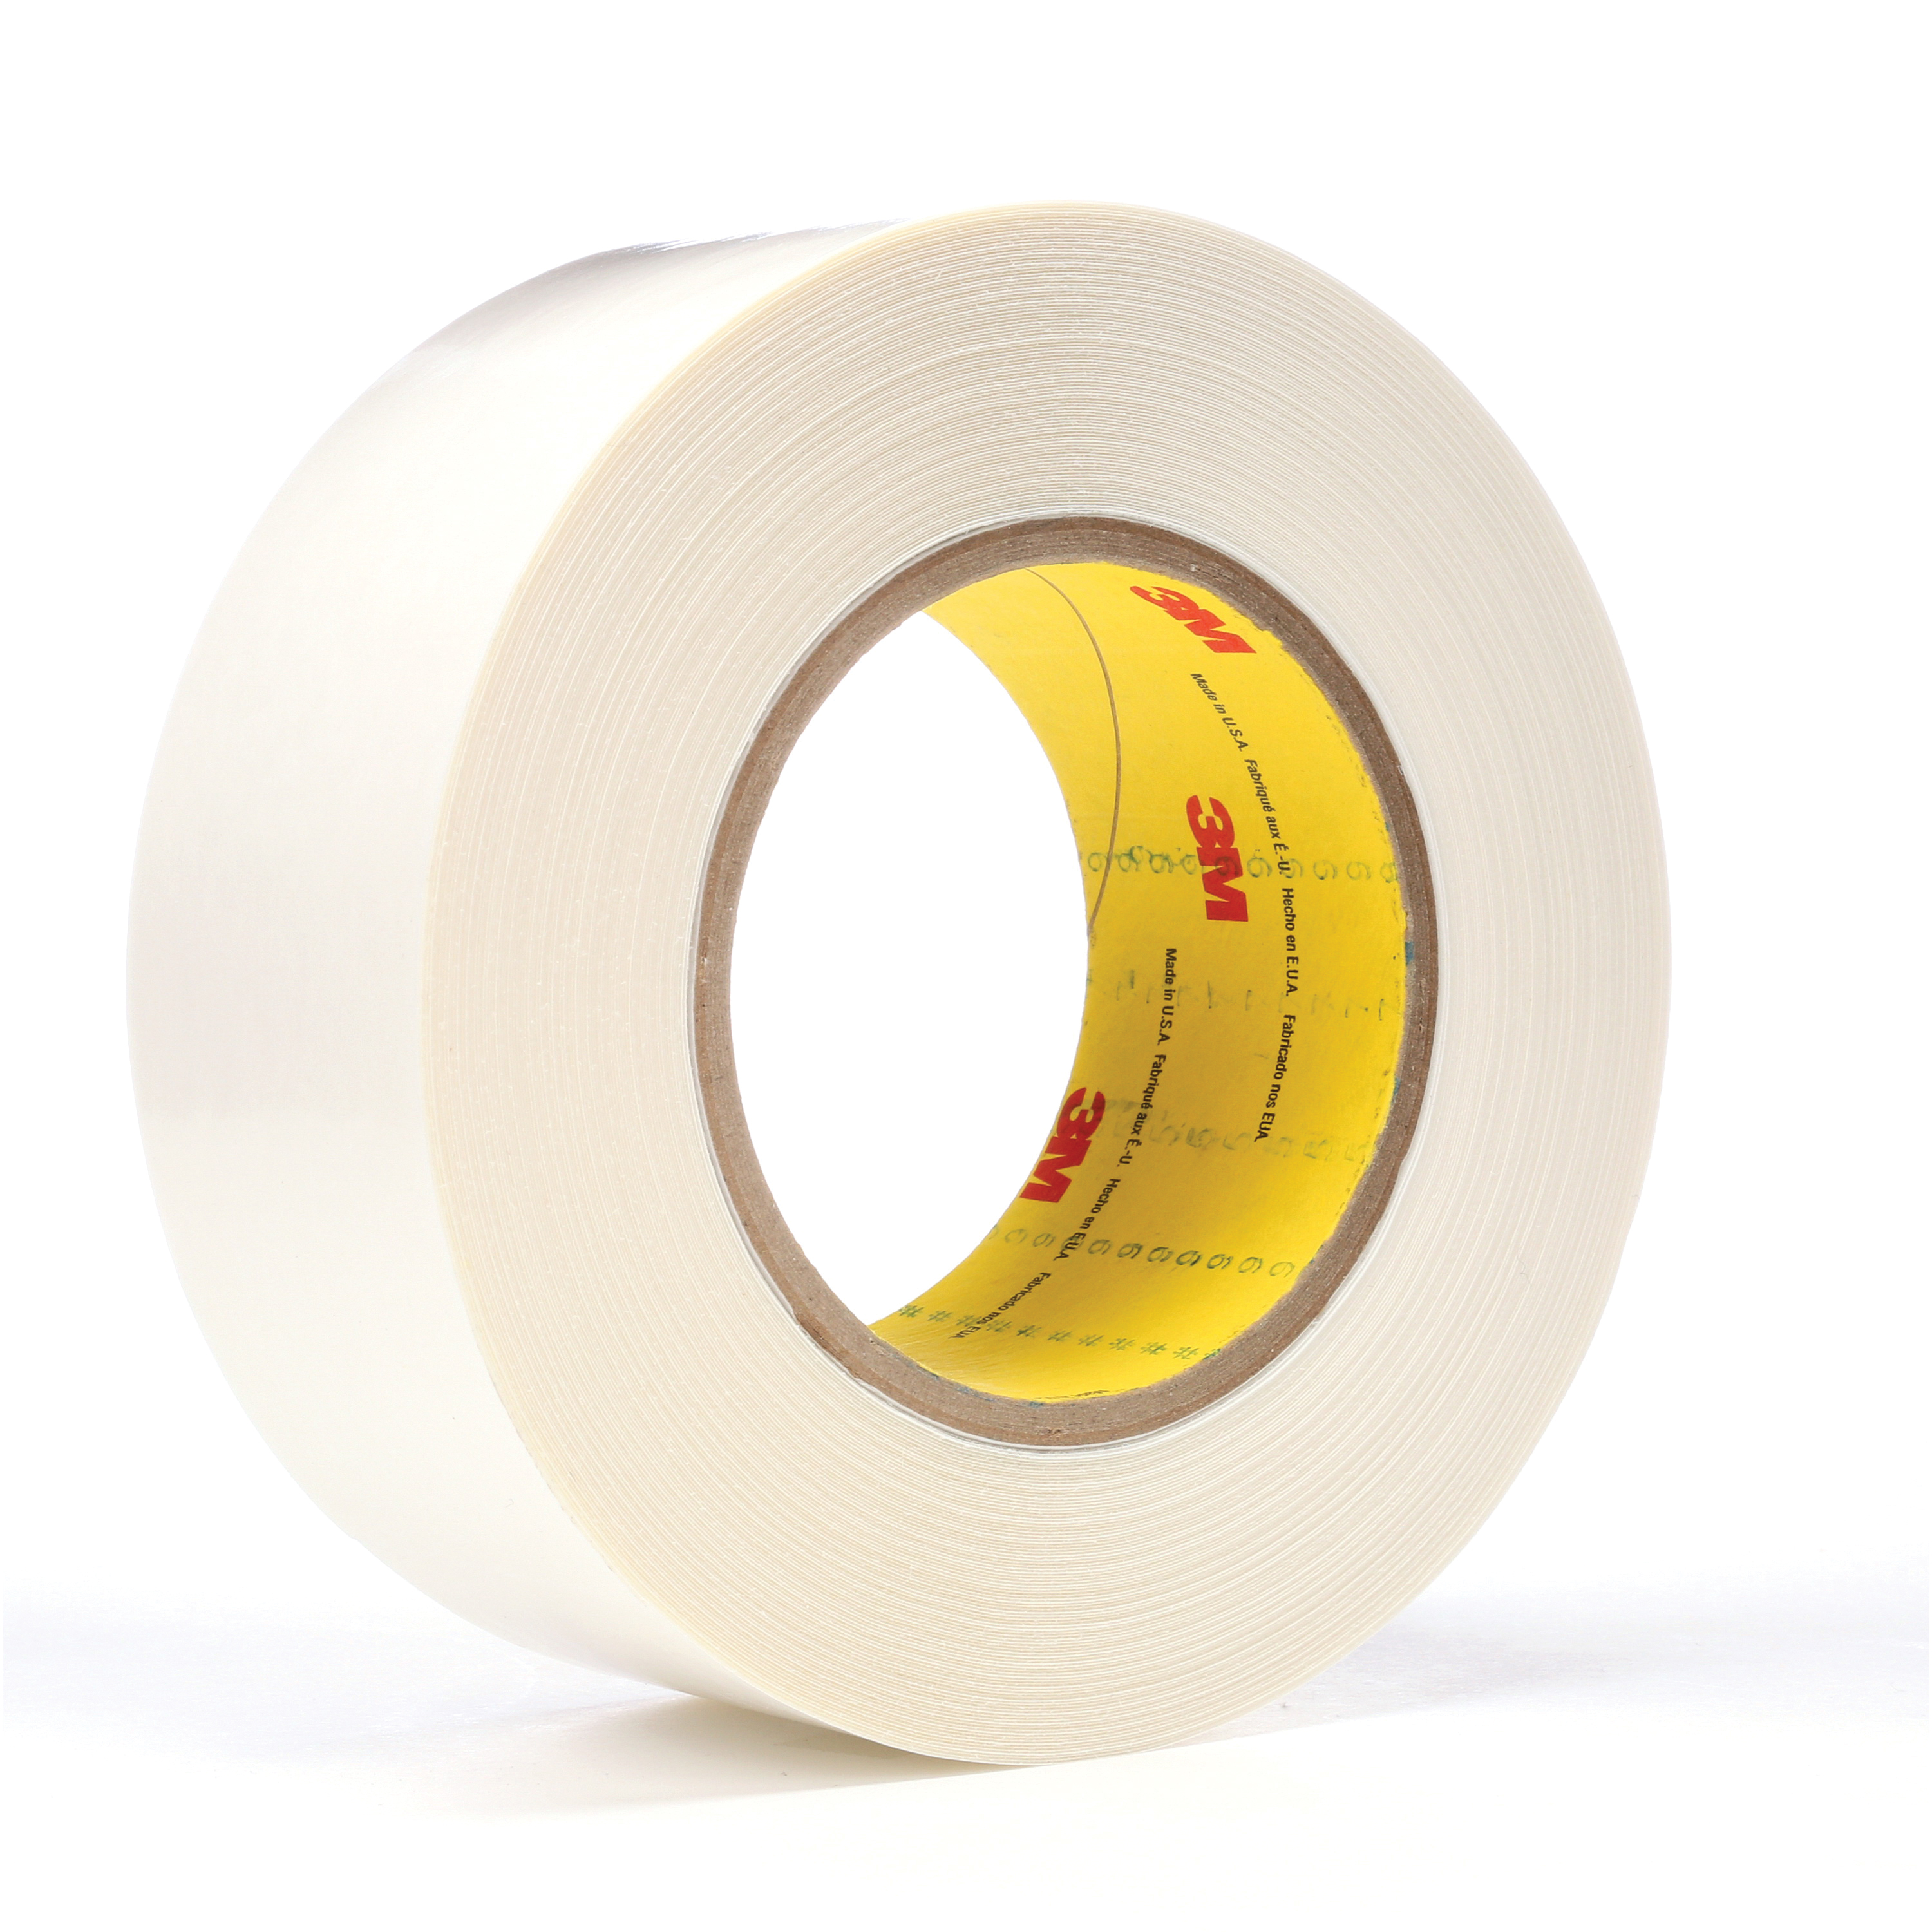 3M™ 021200-65869 Double Coated Tape, 36 yd L x 2 in W, 9 mil THK, Synthetic Rubber Adhesive, Polyethylene Backing, White